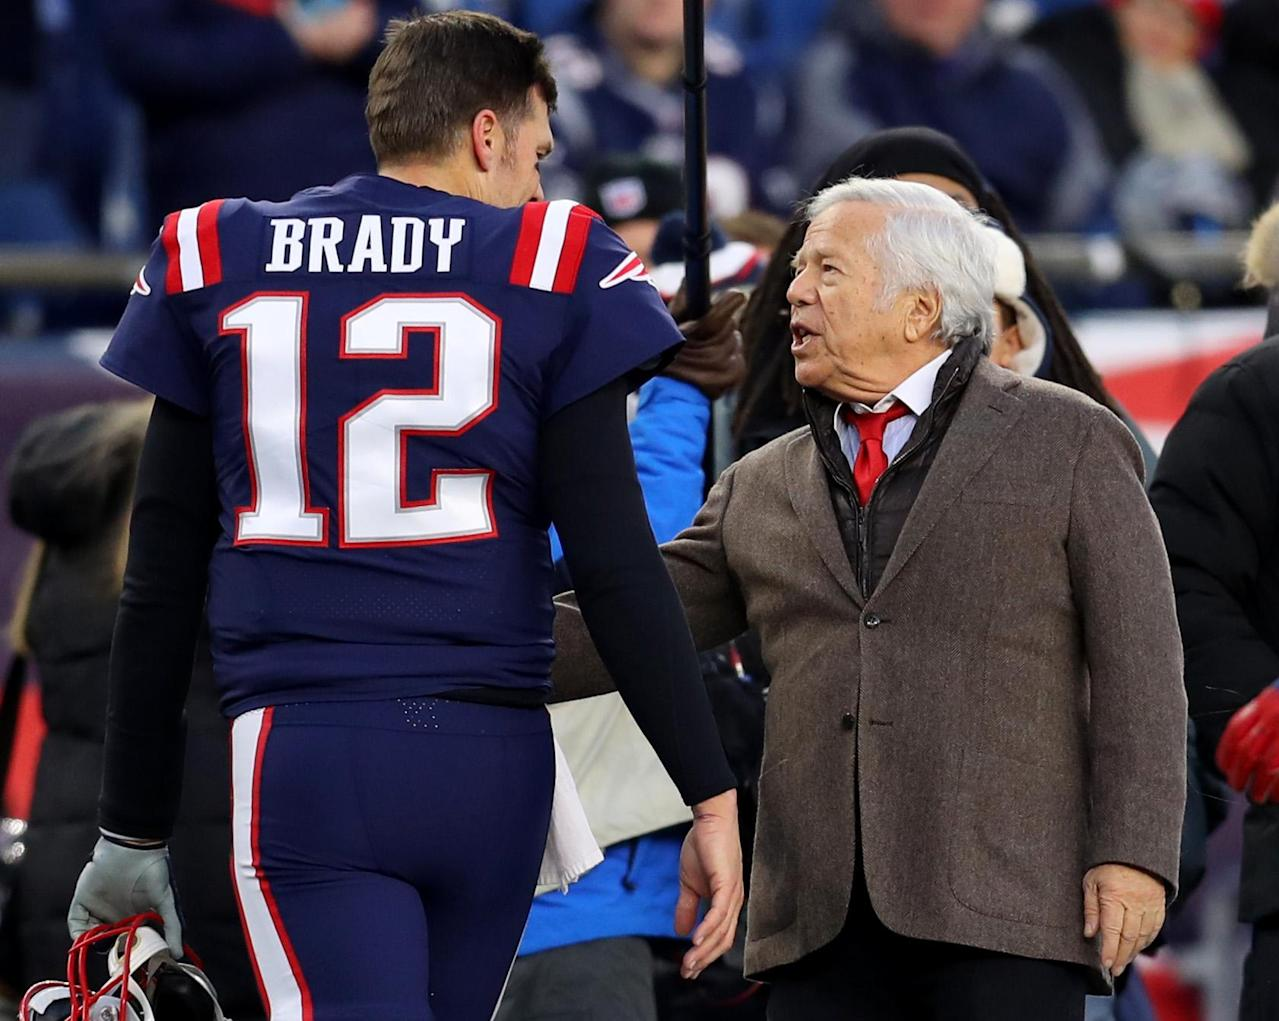 NFL's tough position in Spygate 2.0 probe: How can it hit Robert Kraft without triggering a war?